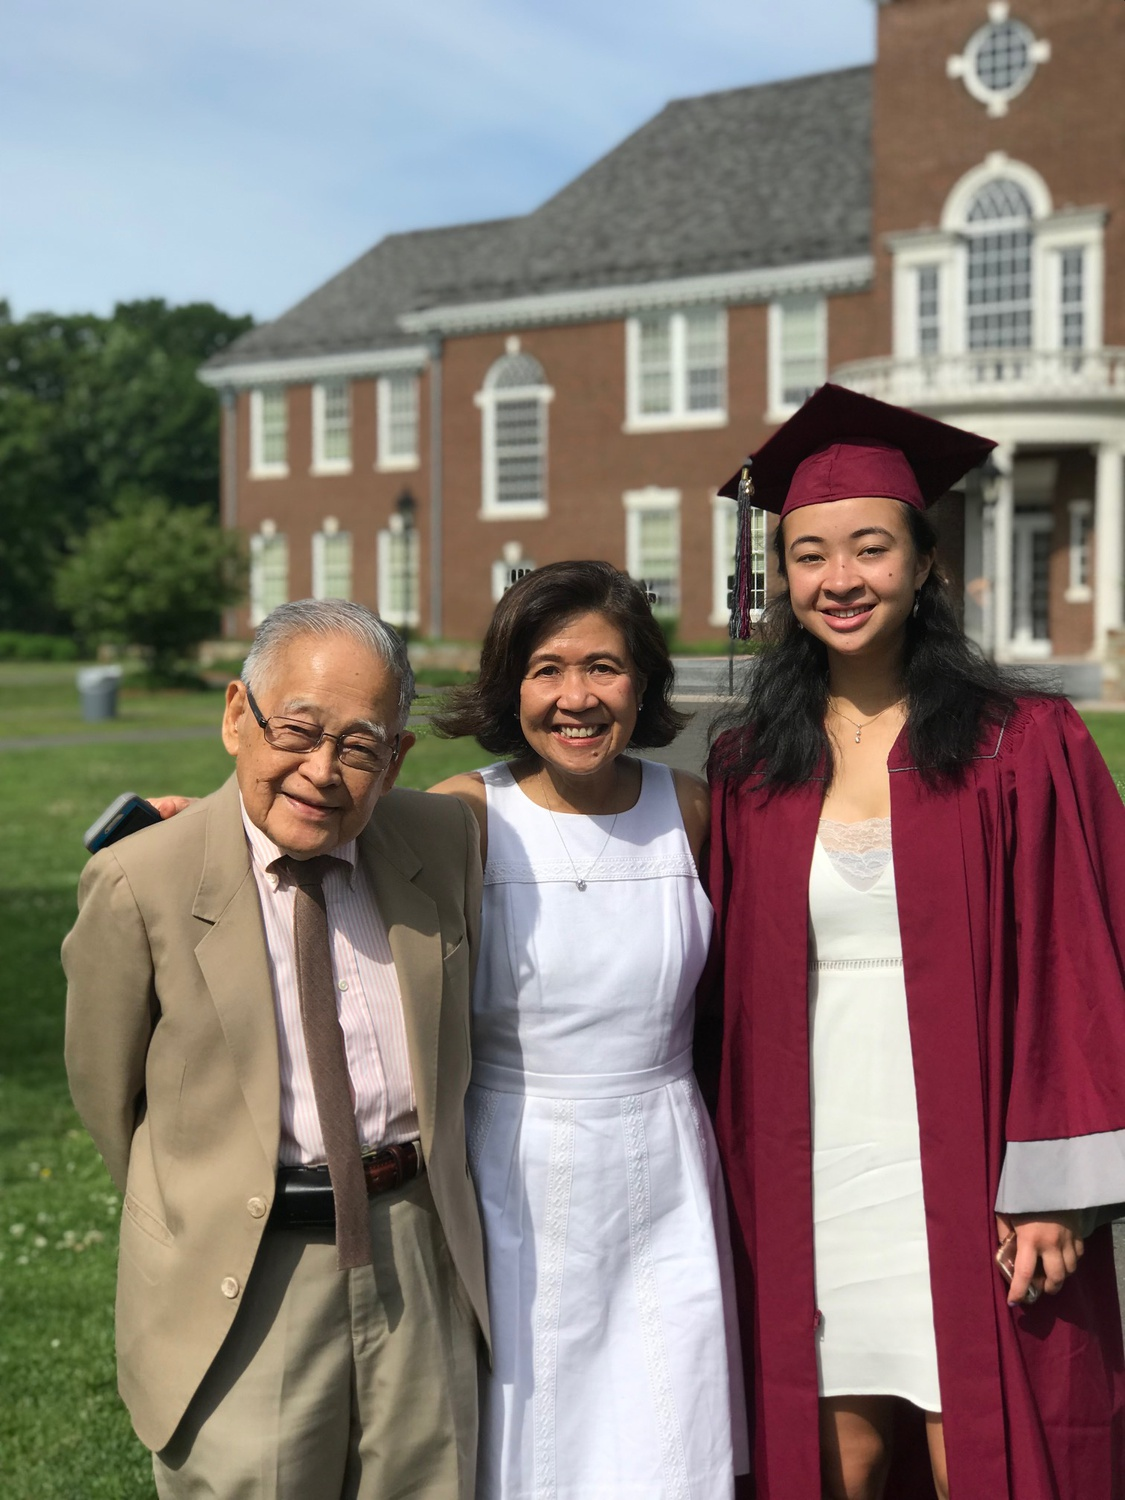 Staff writer Maliya Ellis with her mother and grandfather at her high school graduation